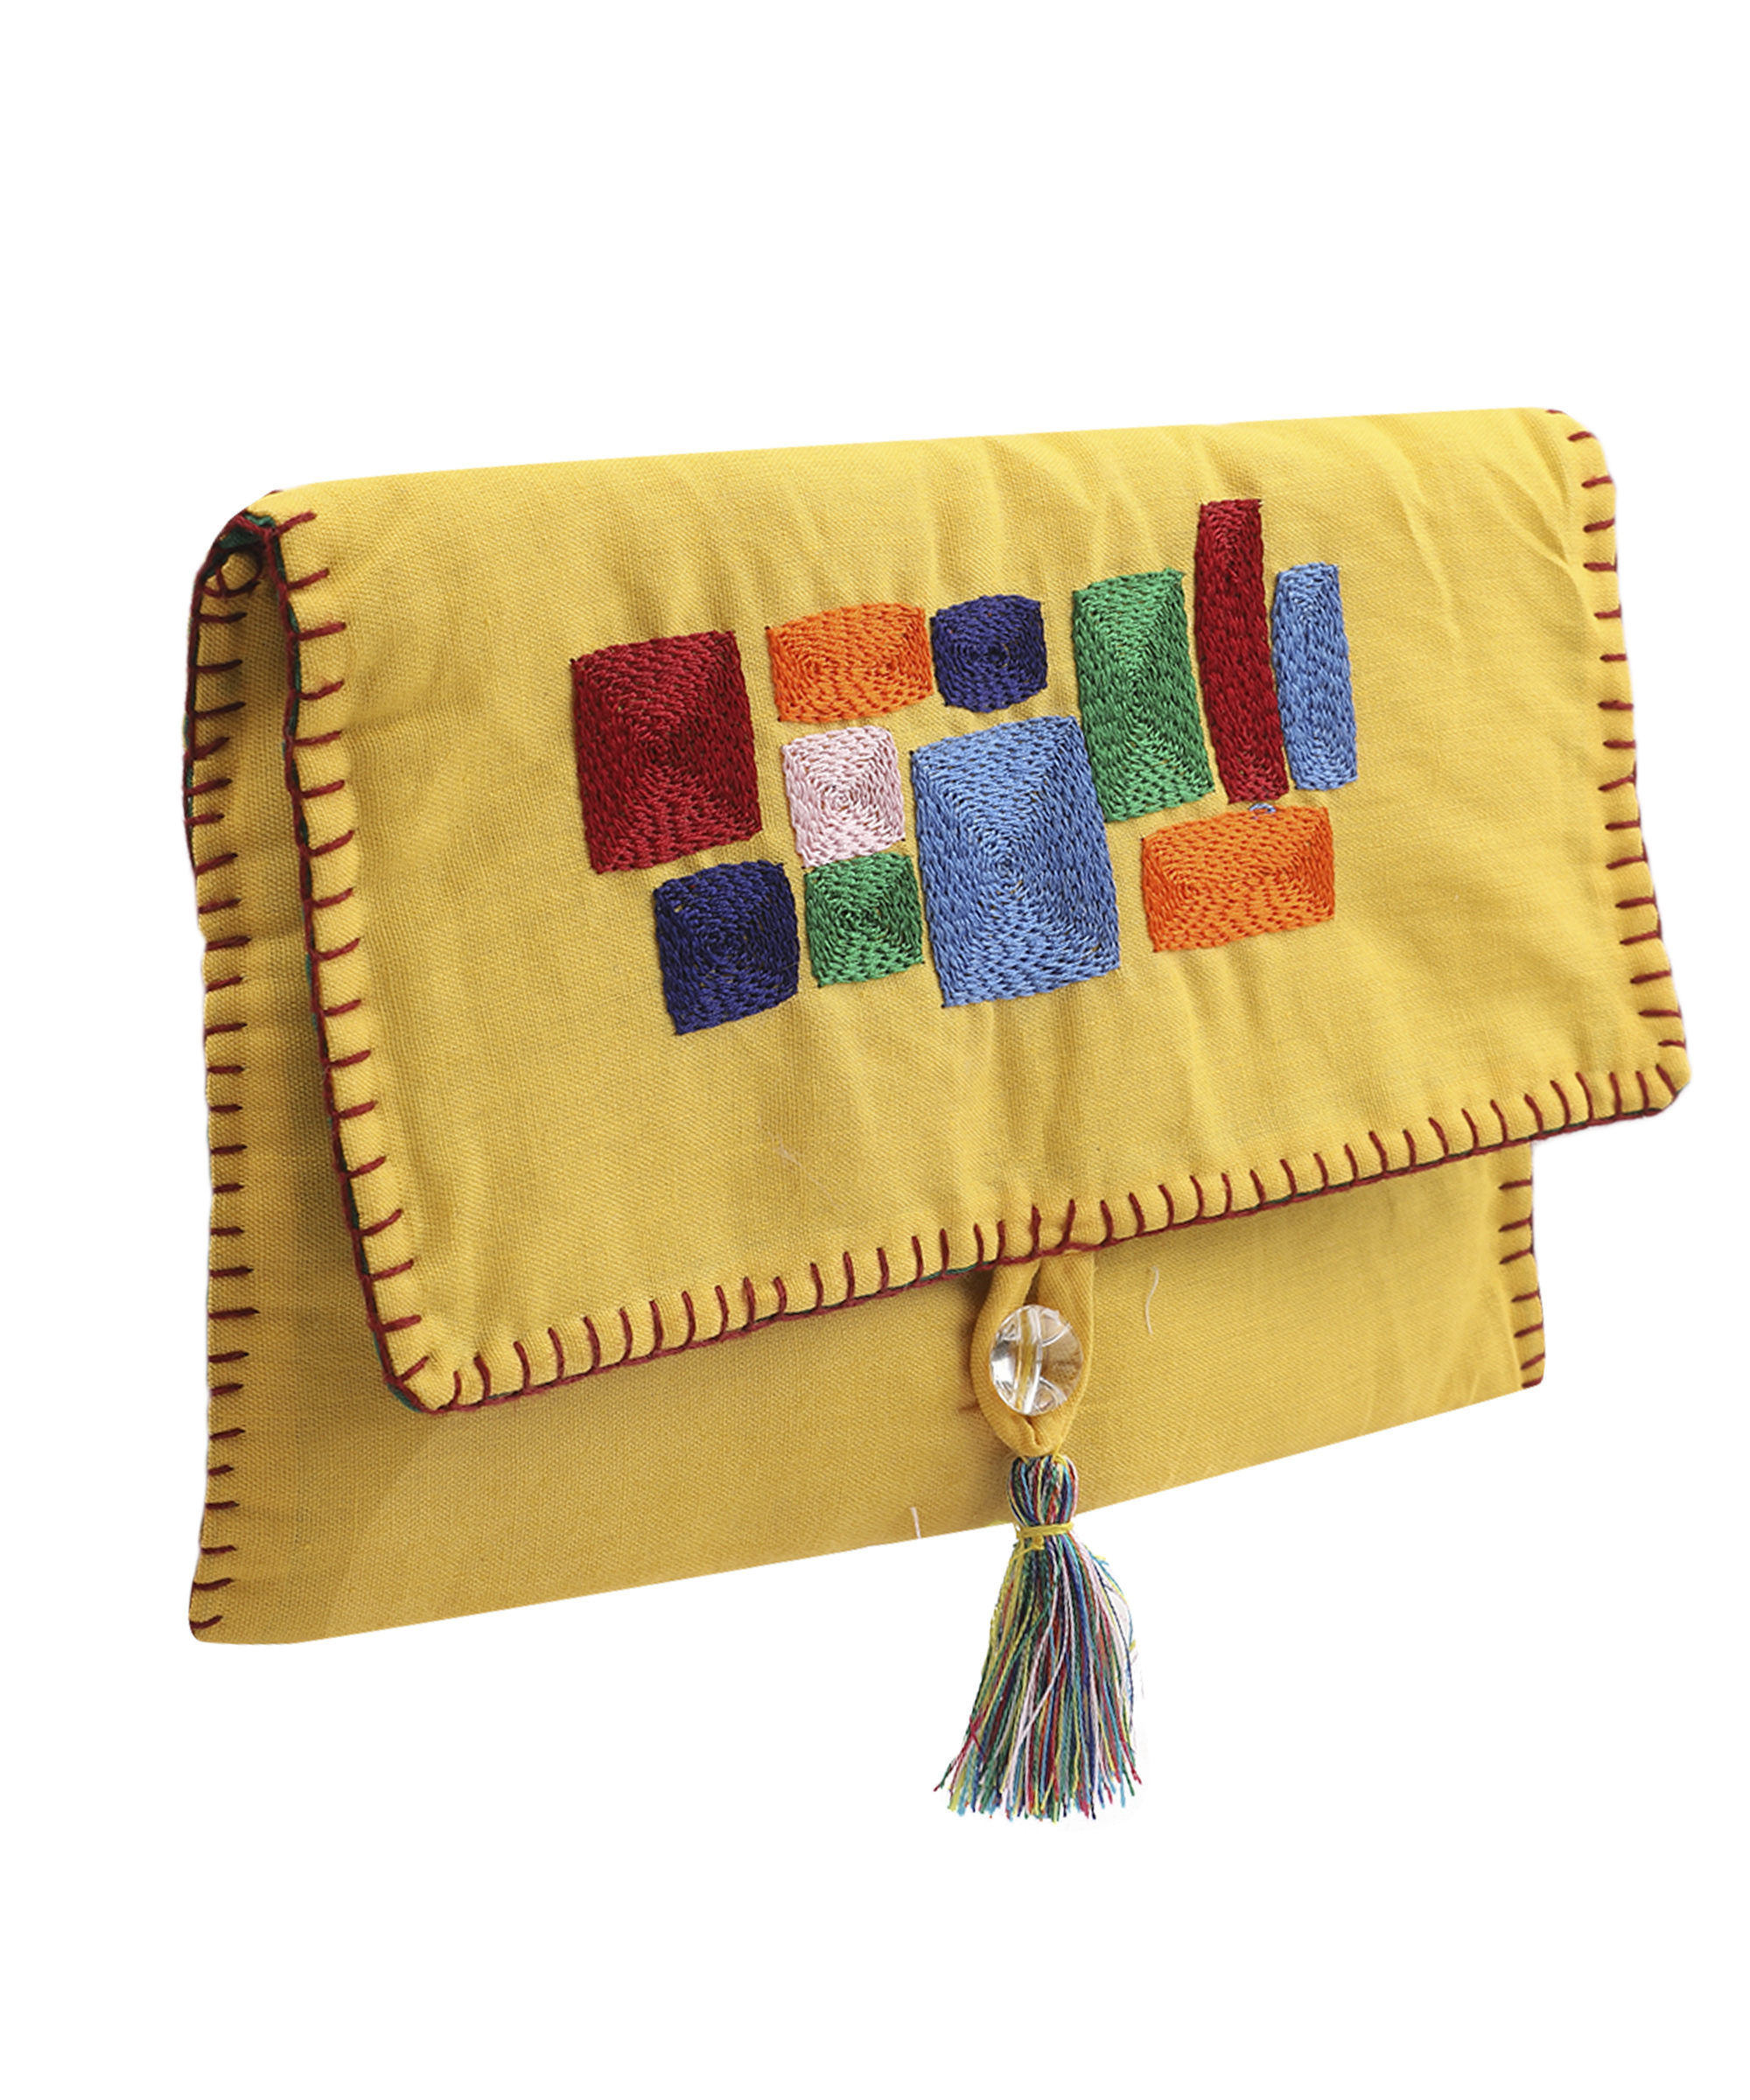 Women's Embroidered Clutch, Poplin Cotton Fabric (Yellow) Slider Thumbnail 1/4